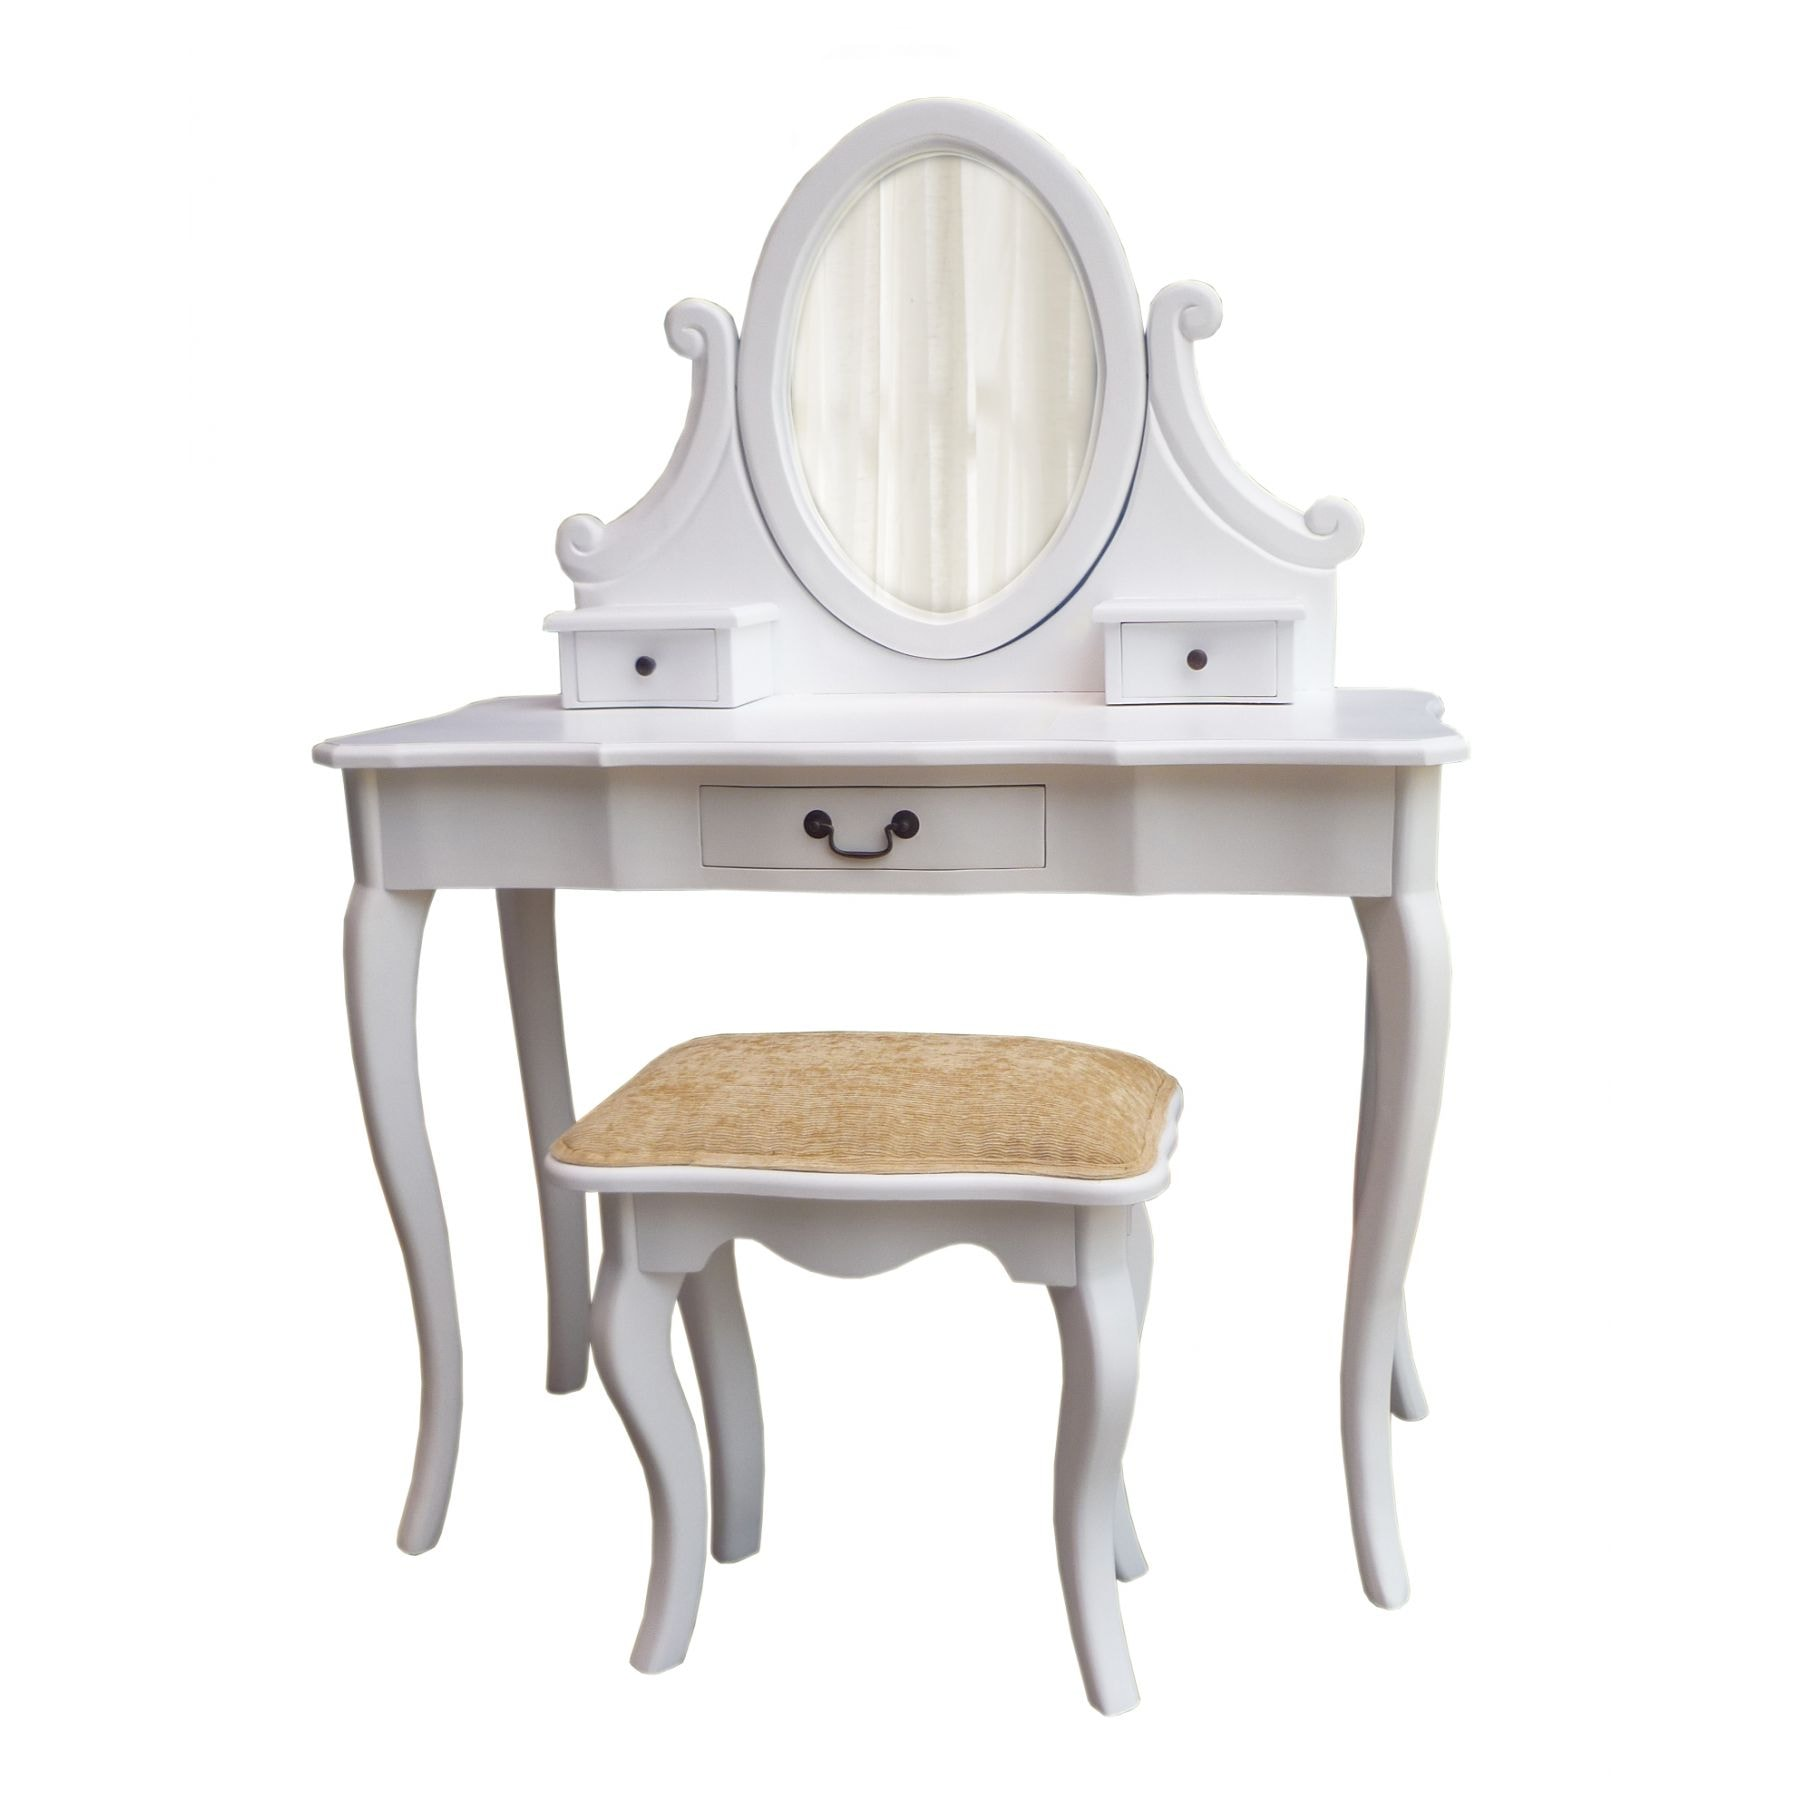 Morrocan Bedroom White Antique French Dressing Table Set Works Well